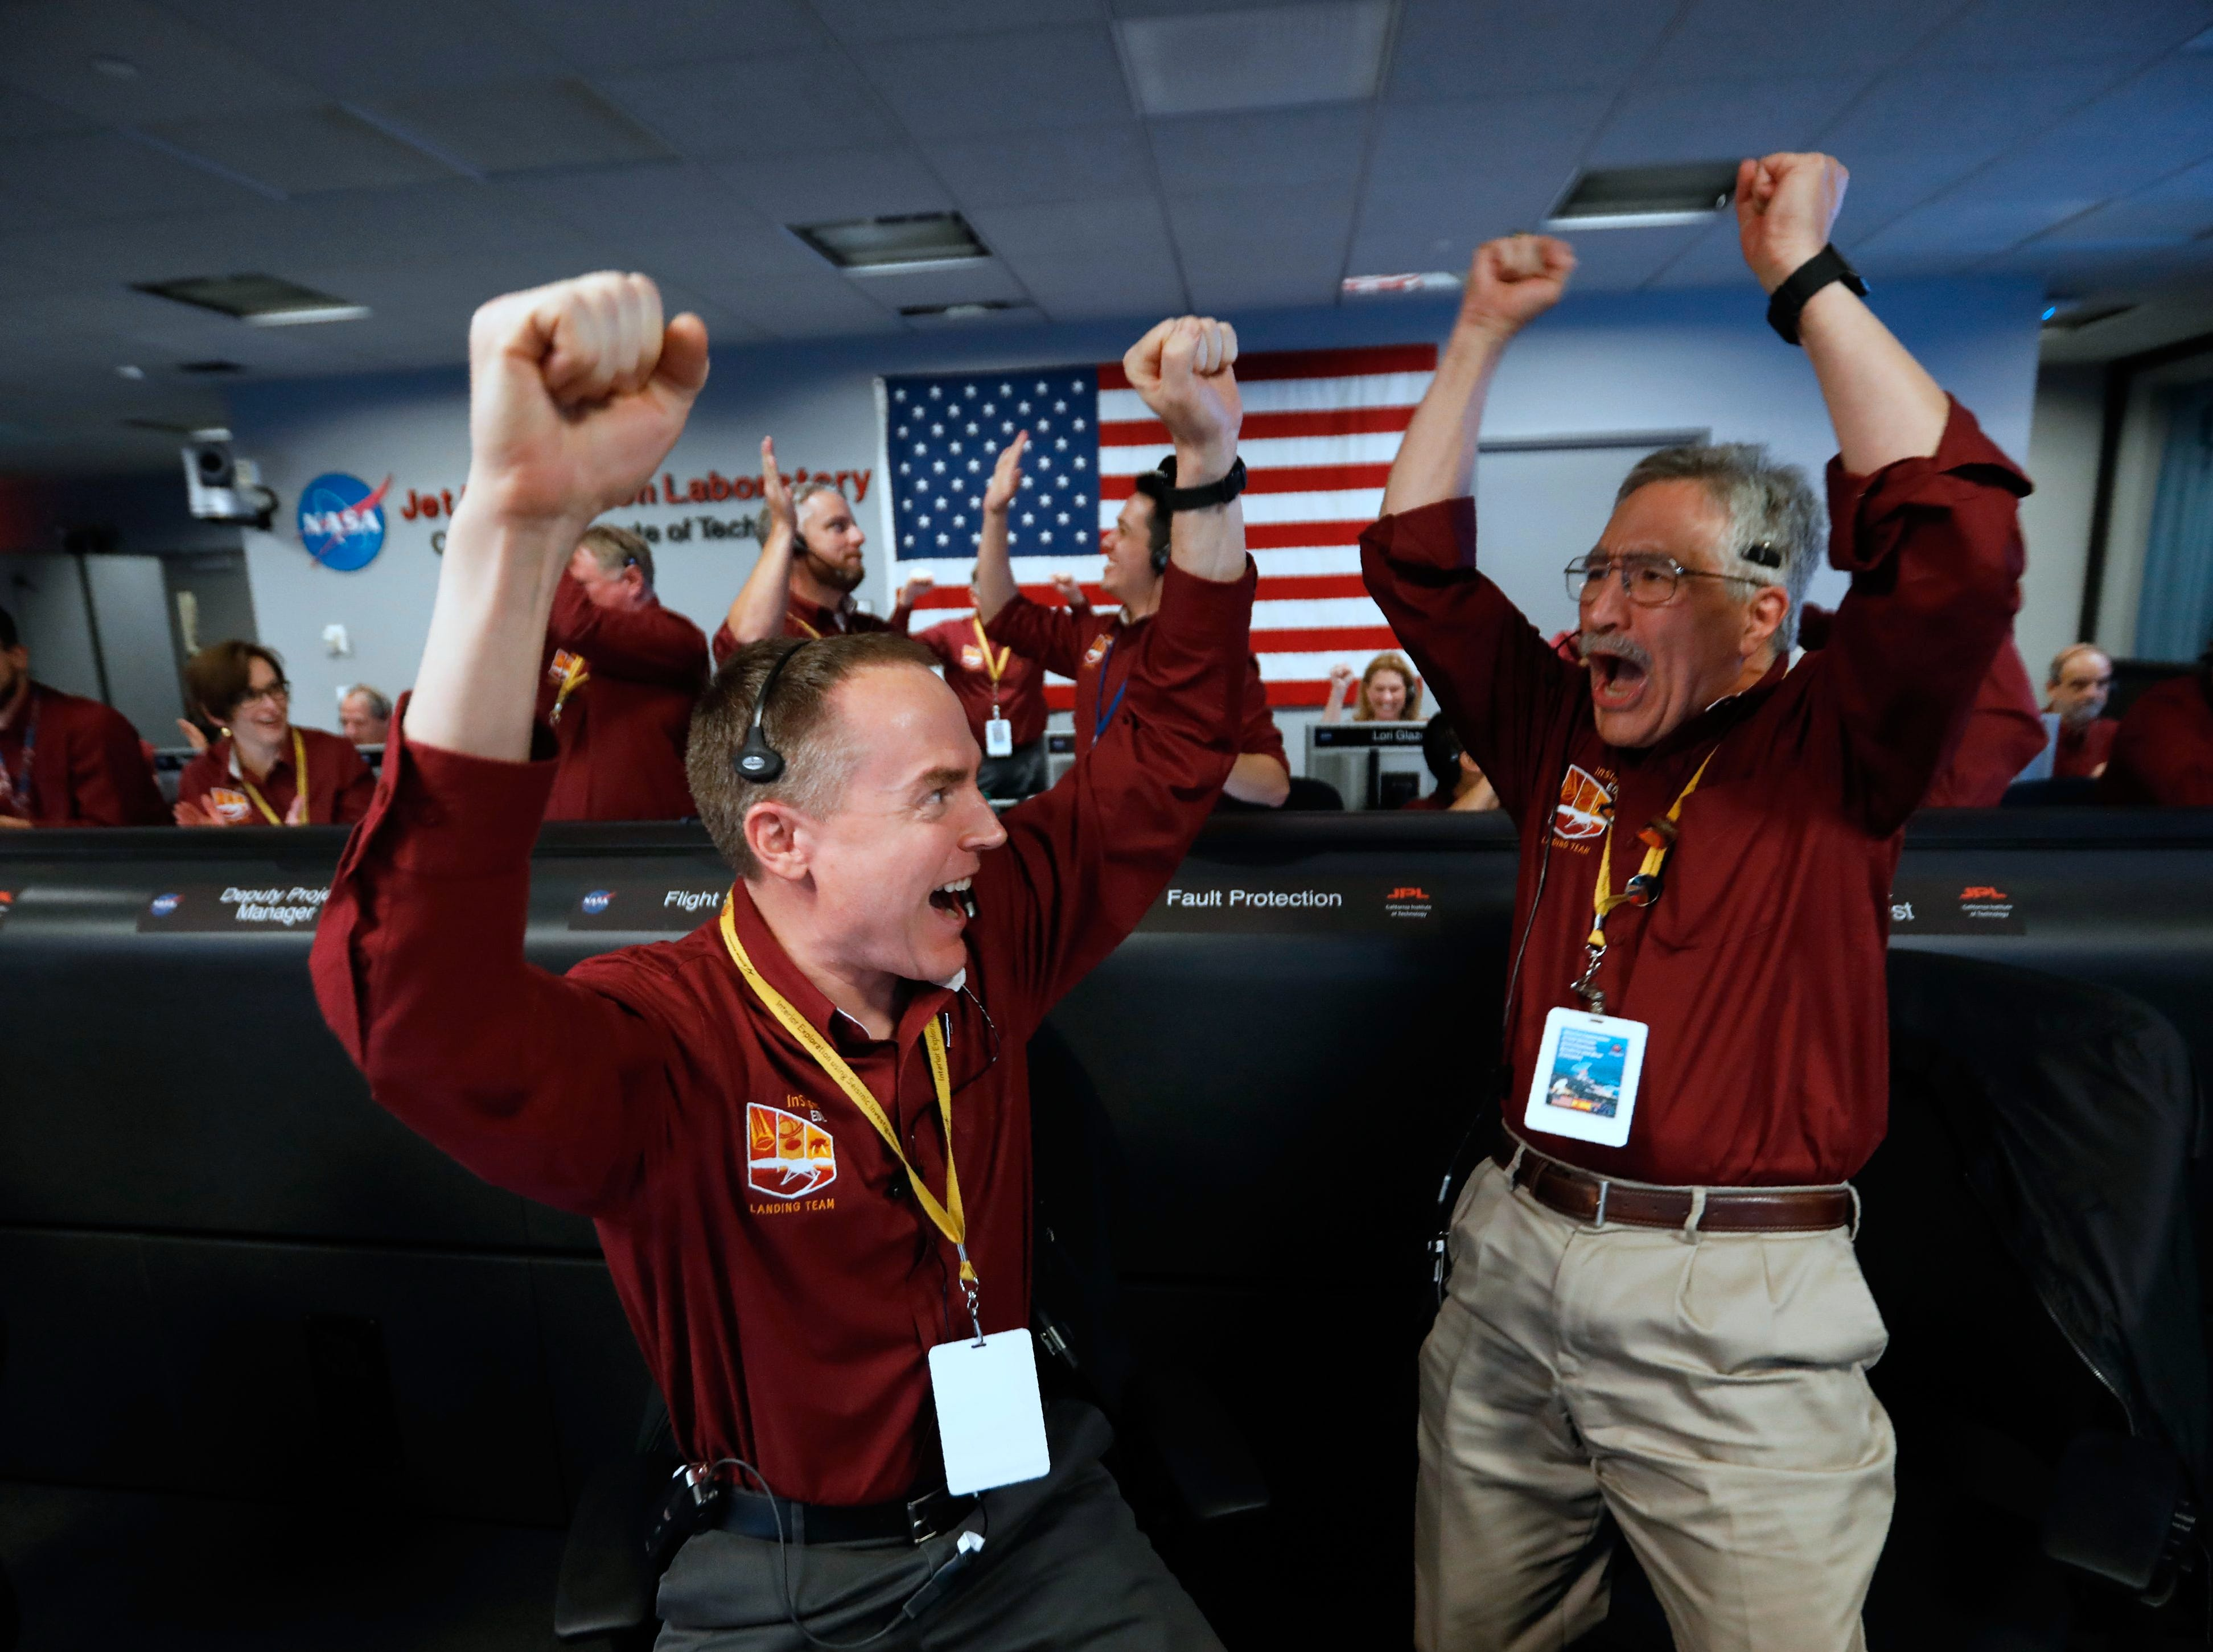 NASA engineers on the flight team, Kris Bruvold (L) and Sandy Krasner (R) celebrate the InSight spacecraft's successfull landing on the planet Mars from the Mission Support area in the Space Flight Operations facility at the NASA Jet Propulsion Laboratory (JPL) in Pasadena, California on Nov. 26, 2018. Cheers and applause erupted at NASA's Jet Propulsion Laboratory as a $993 million unmanned lander, called InSight, touched down on the Red Planet and managed to send back its first picture.